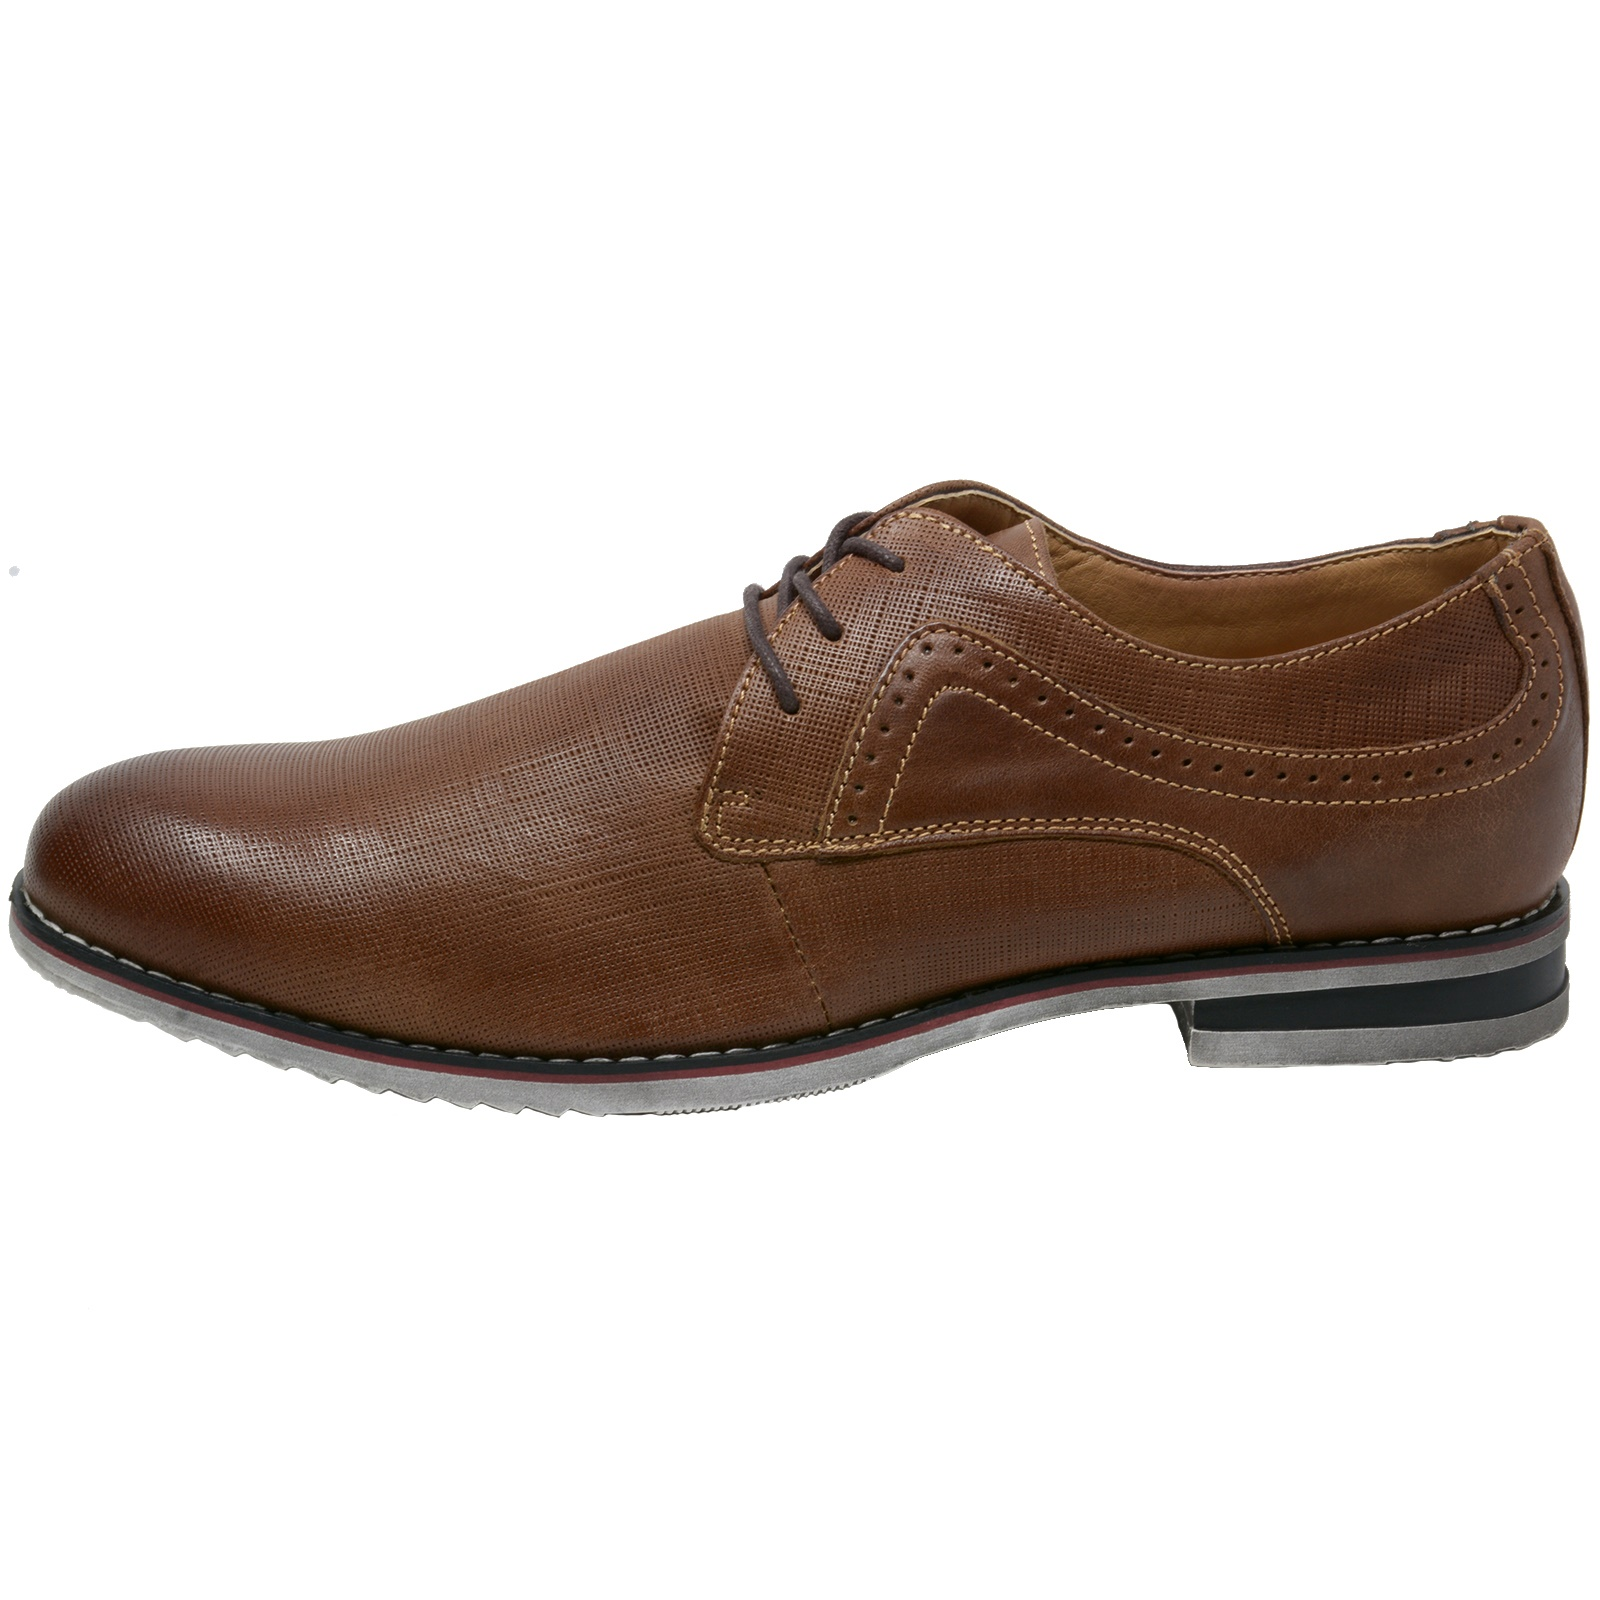 Double-Diamond-by-Alpine-Swiss-Mens-Saffiano-Leather-Lace-Up-Oxford-Dress-Shoes thumbnail 19